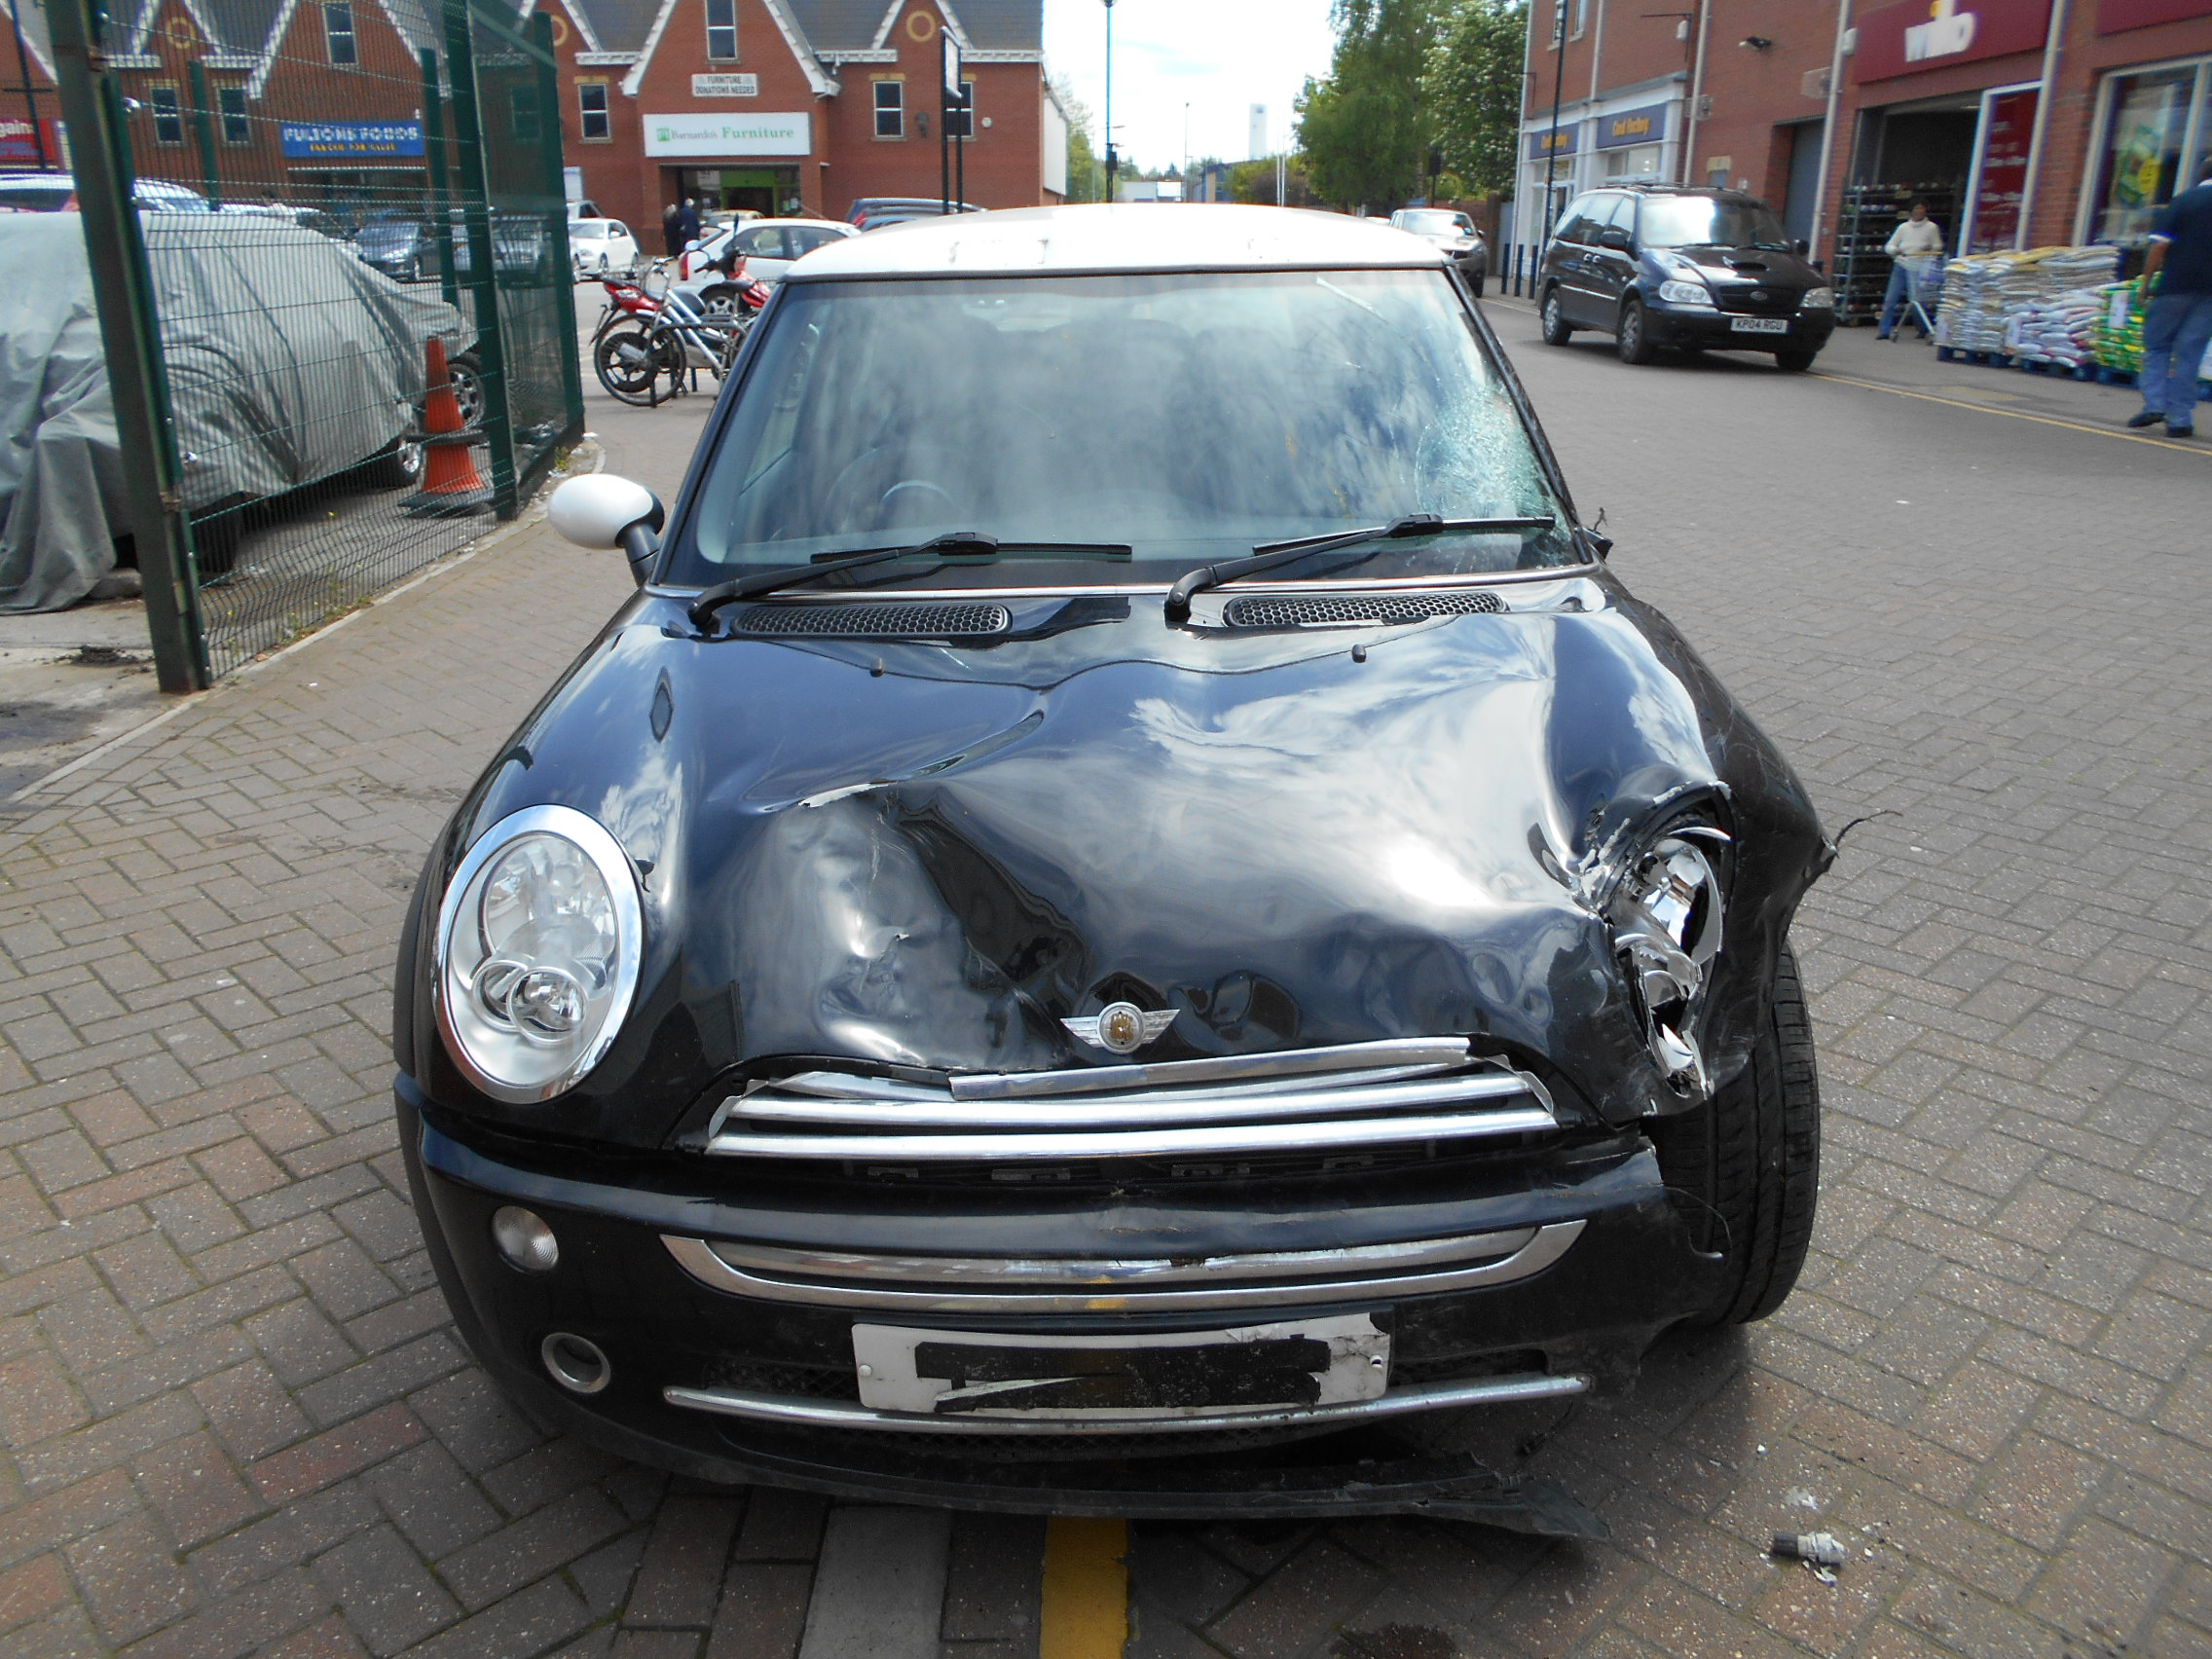 04 Black 1.6 BMW Mini Cooper - 5